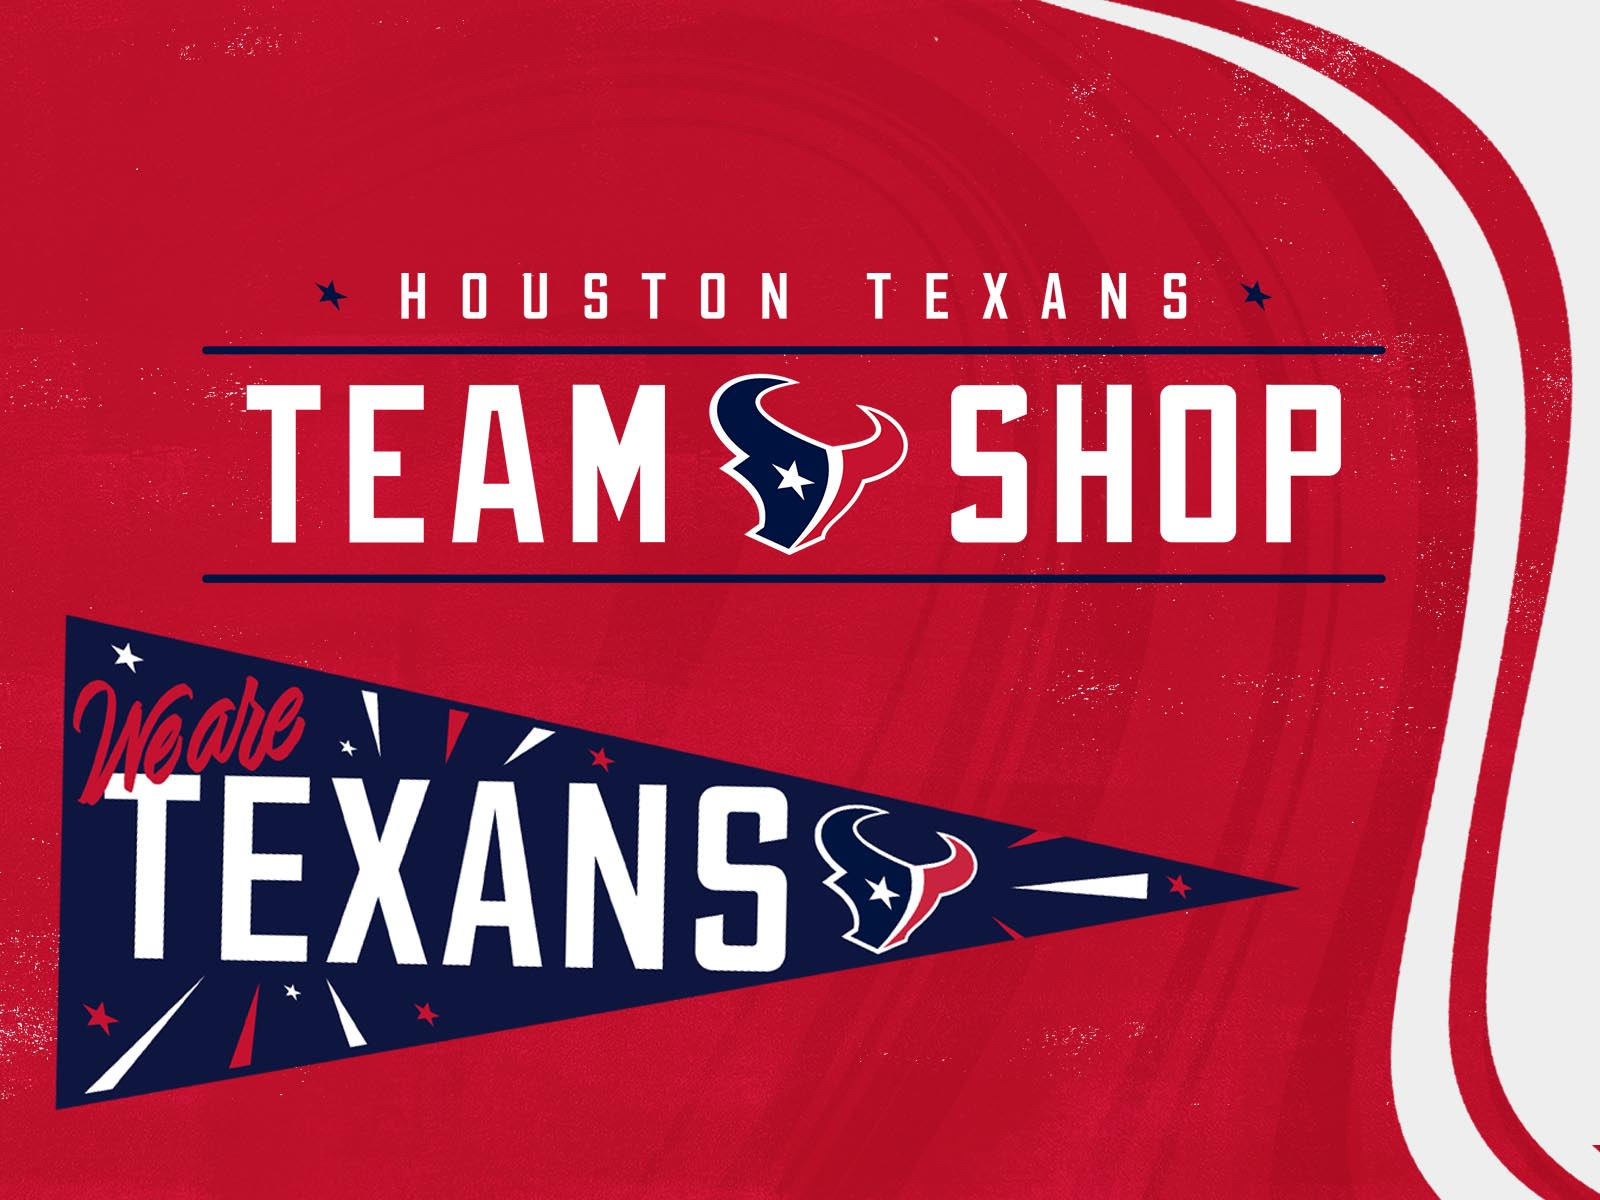 Houston Texans Team Shop Grand Reopening!